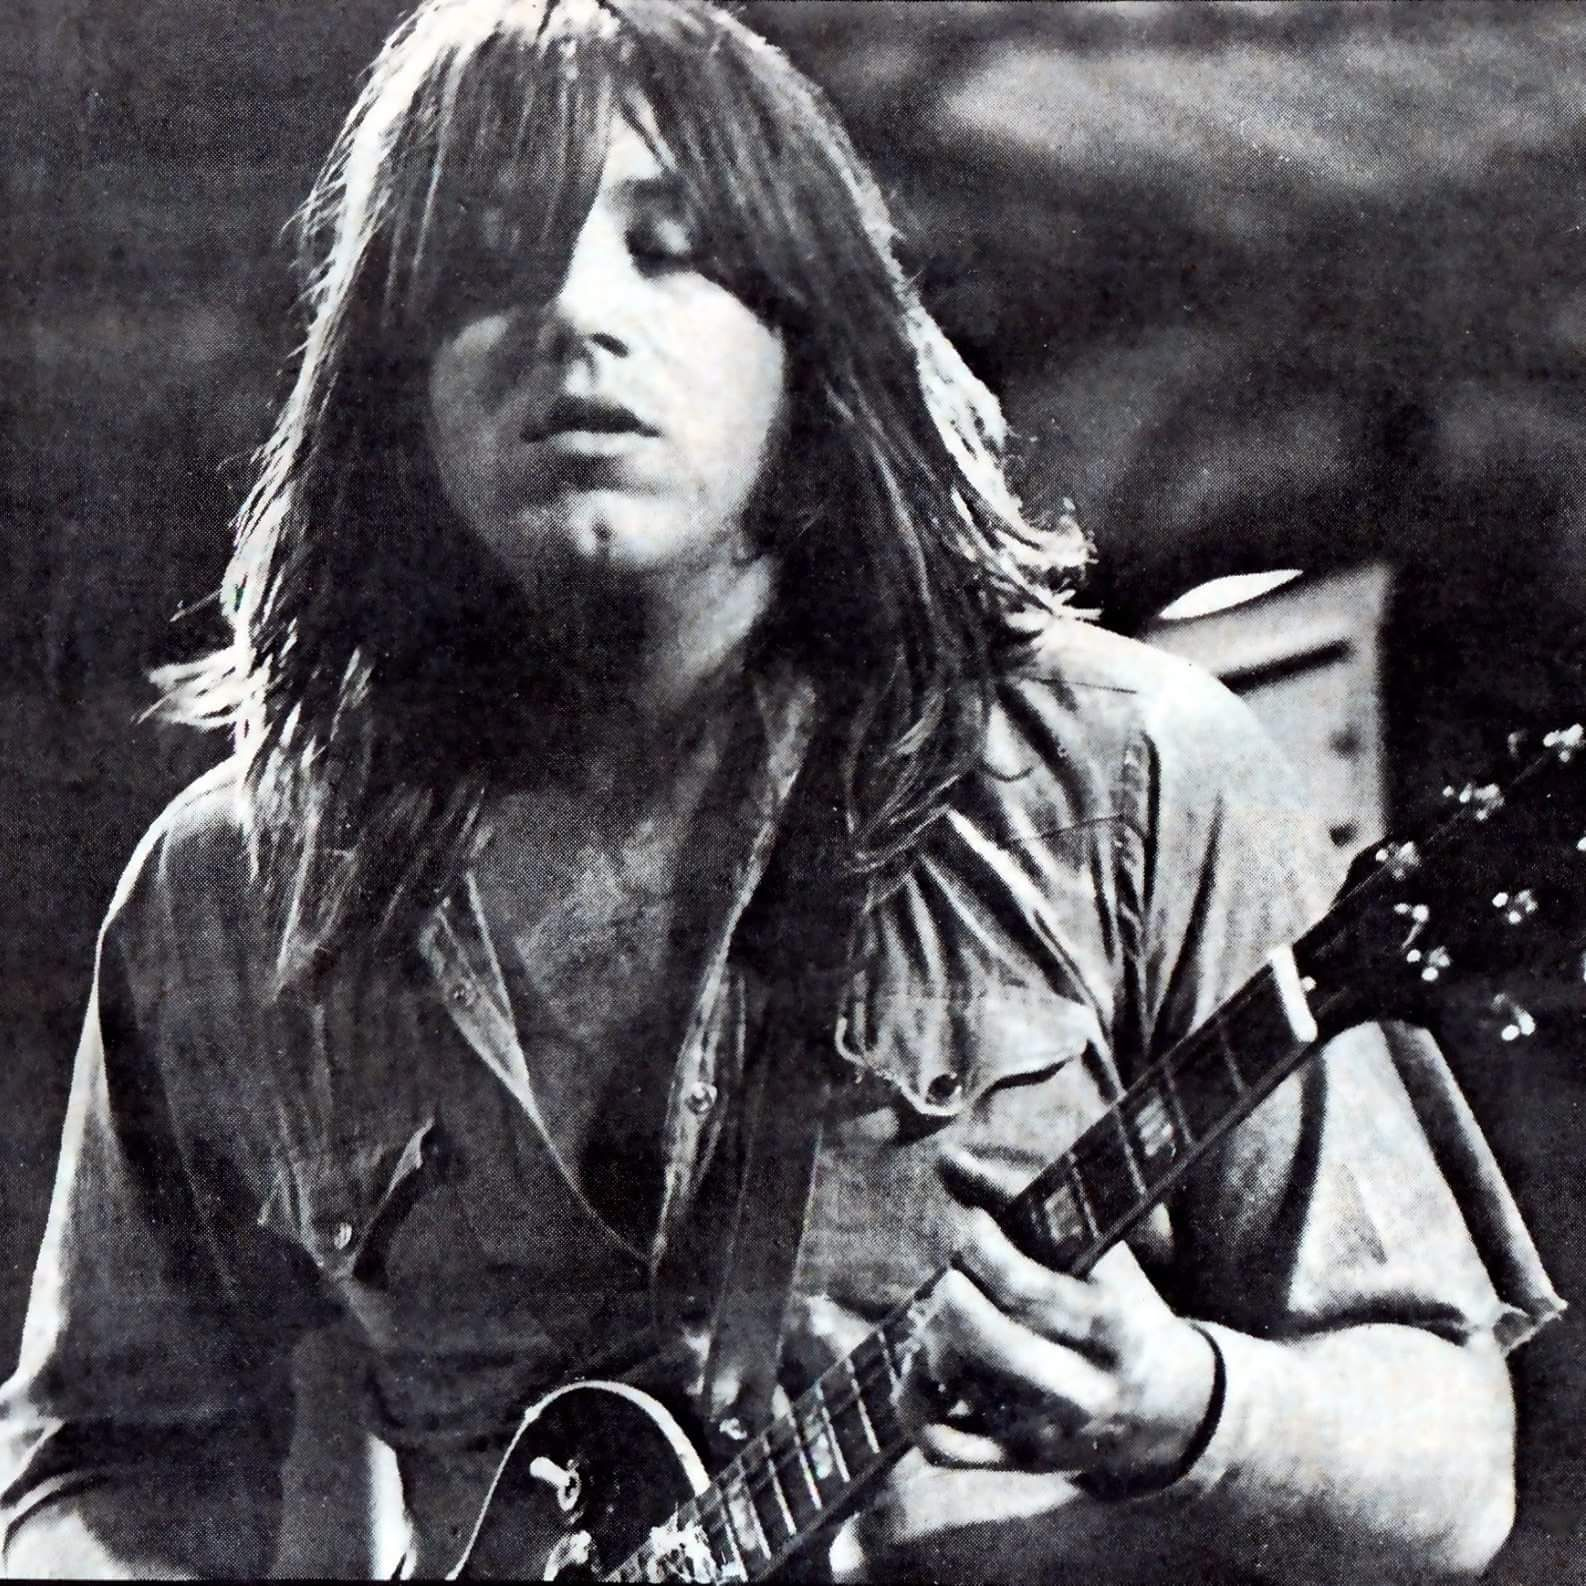 Terry Kath - Chicago (Isle of Wight Festival, August 28, 1970 ...